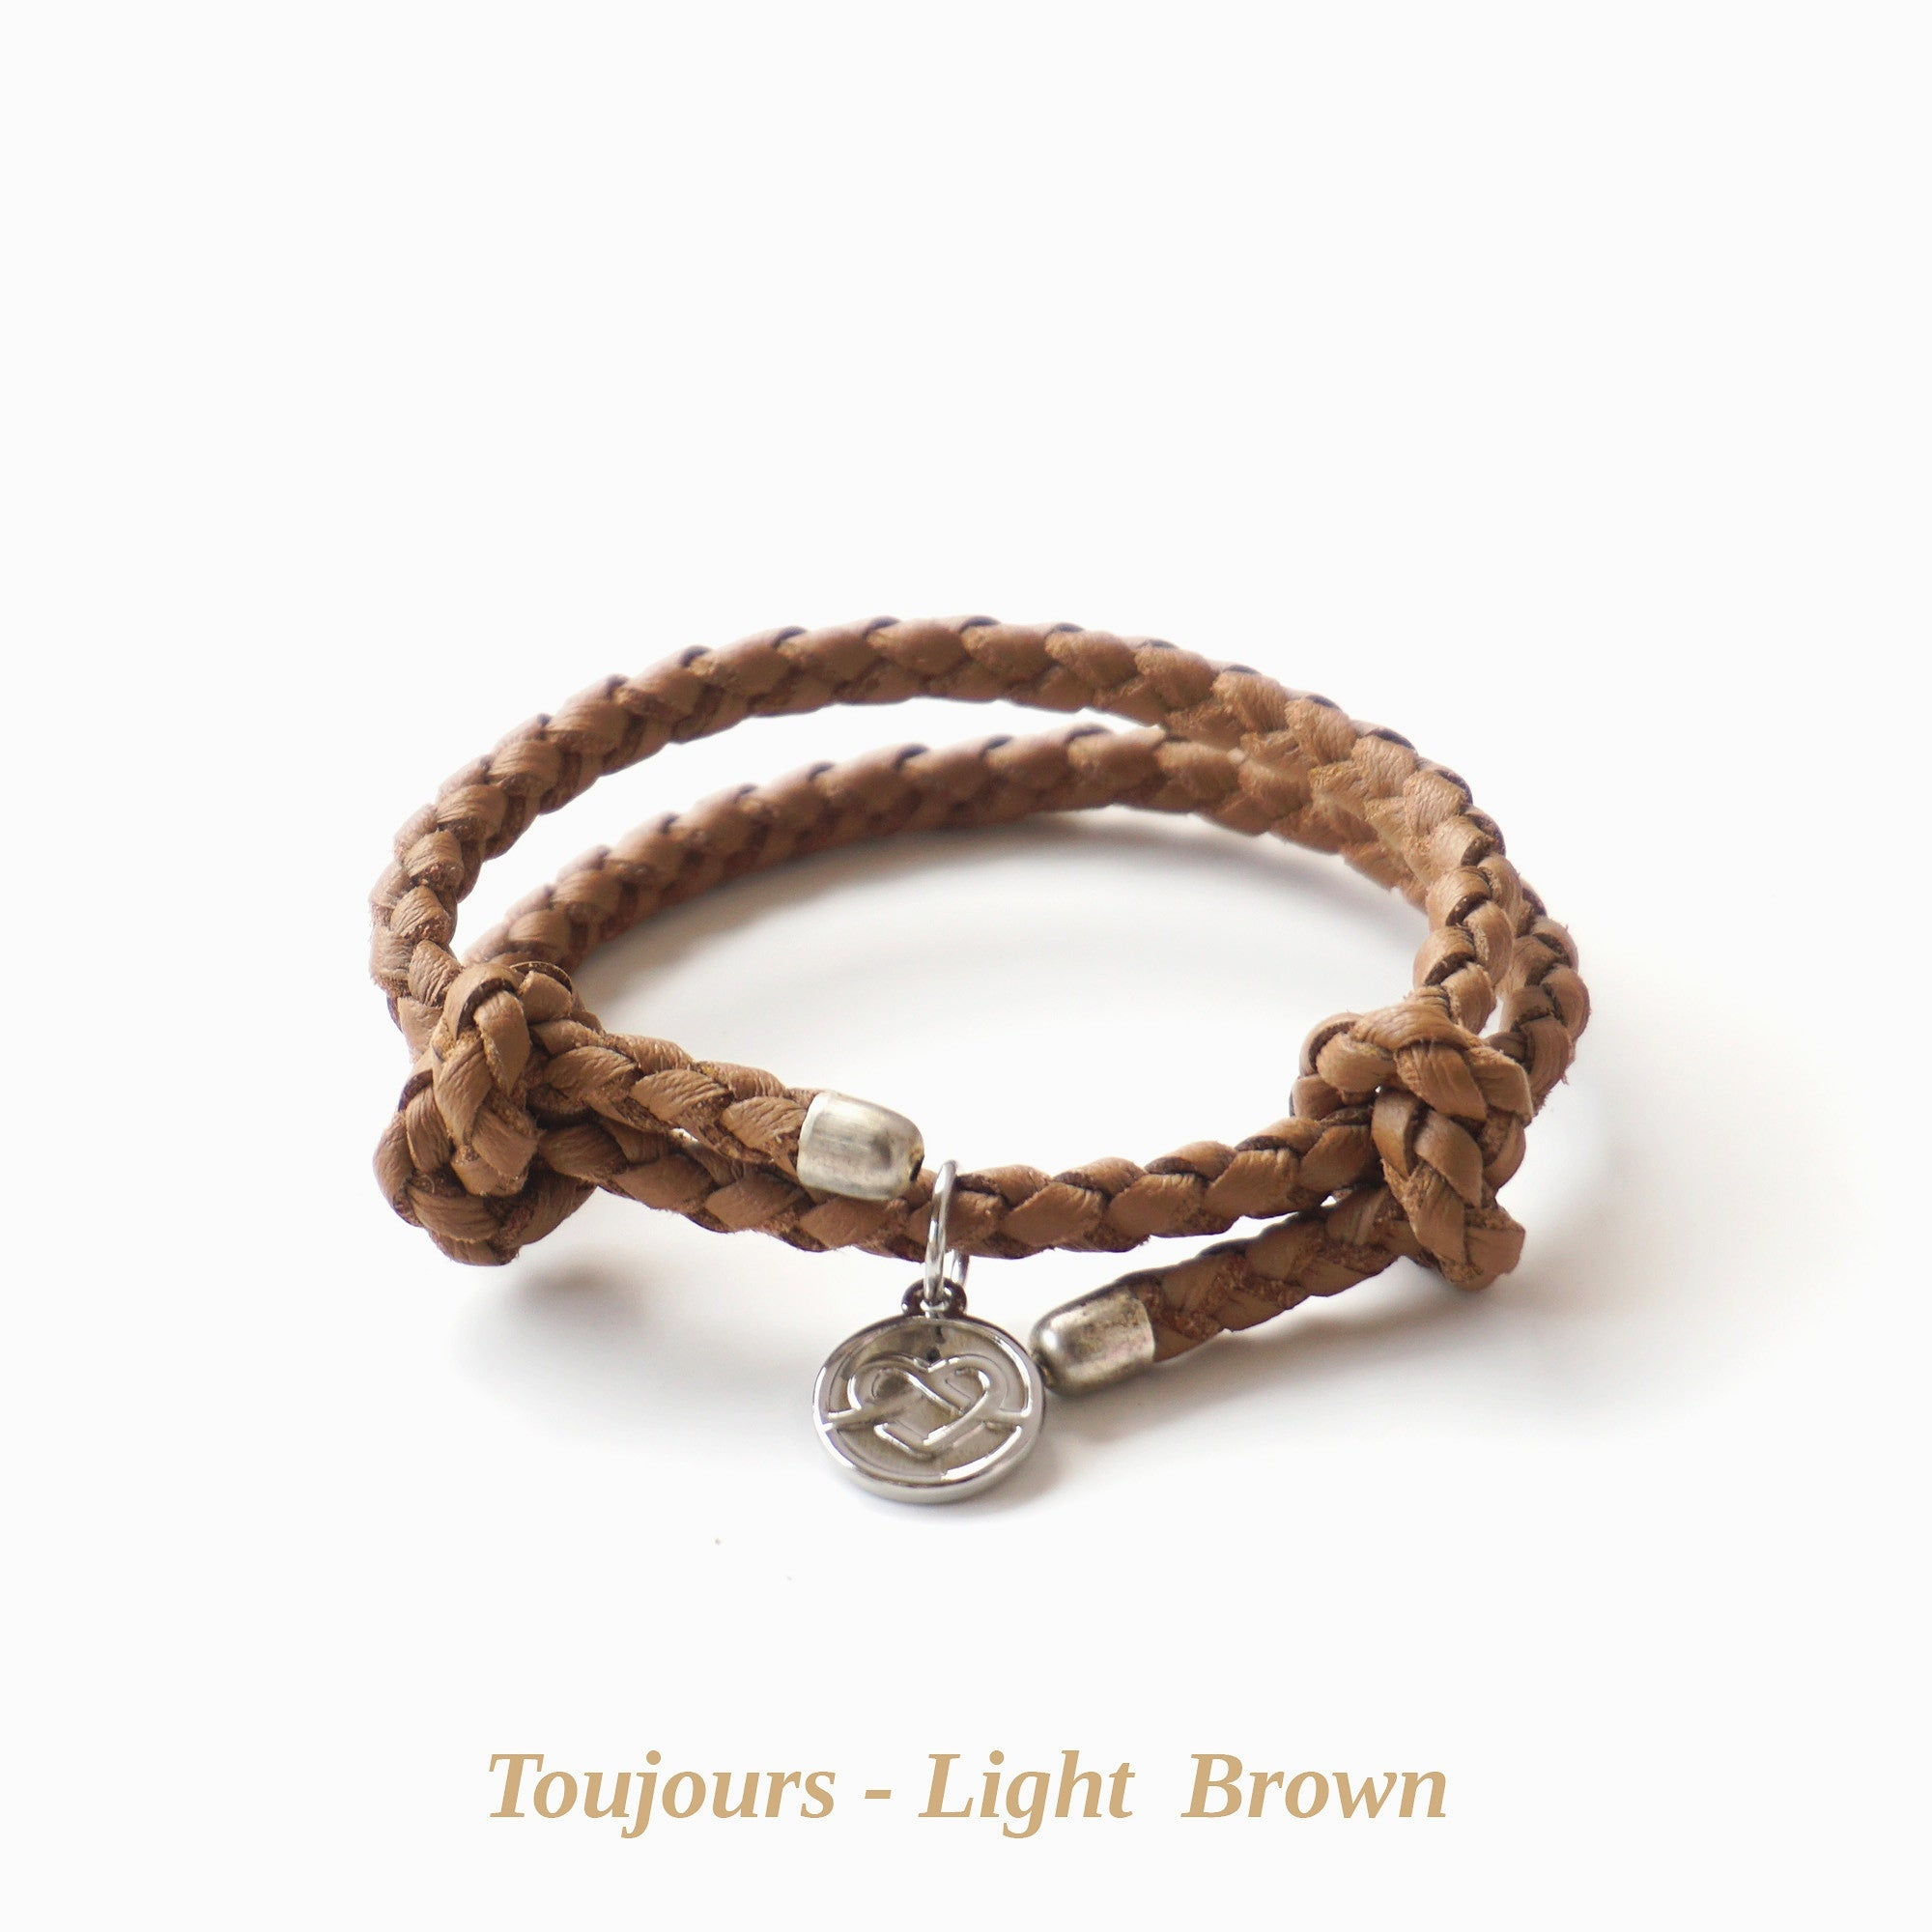 Light Brown Toujours Bracelet